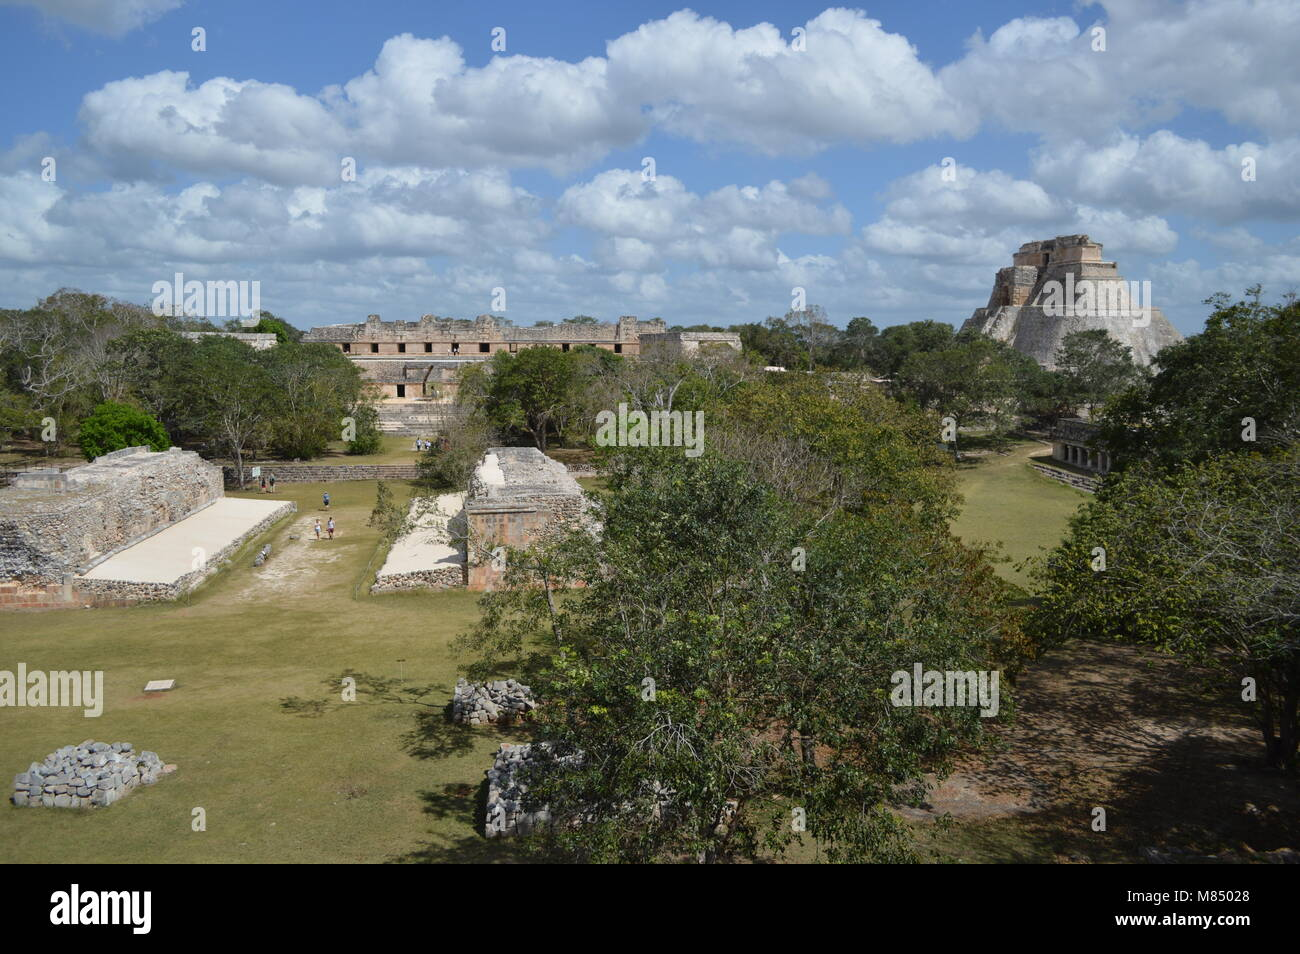 A view of the ruins at Uxmal in Mexico including the Mayan ballcourt and the Pyramid of the Magician - Stock Image